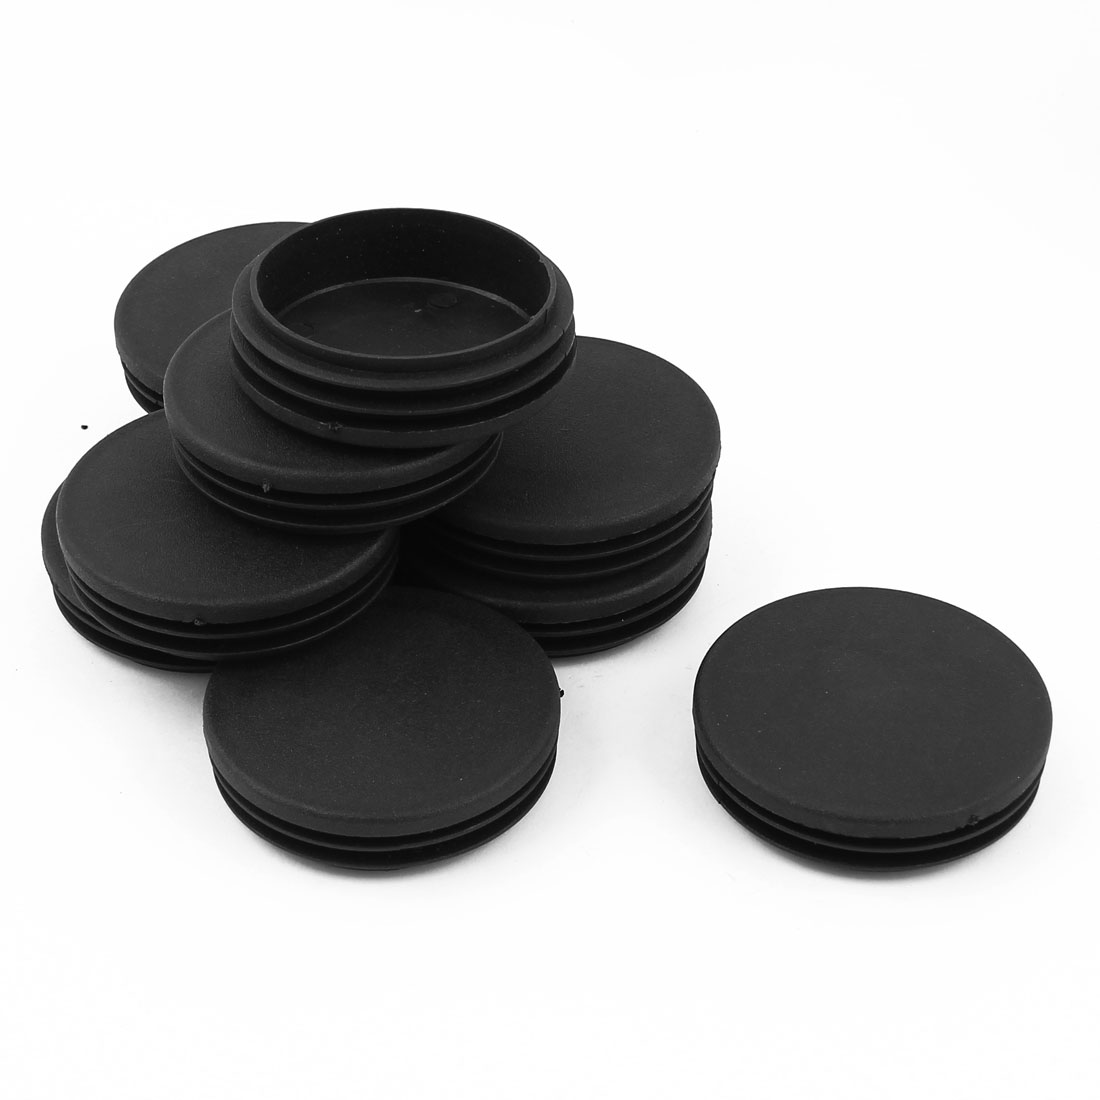 10 Pcs Black Plastic 63mm Blanking End Caps Round Tube Insert Bung